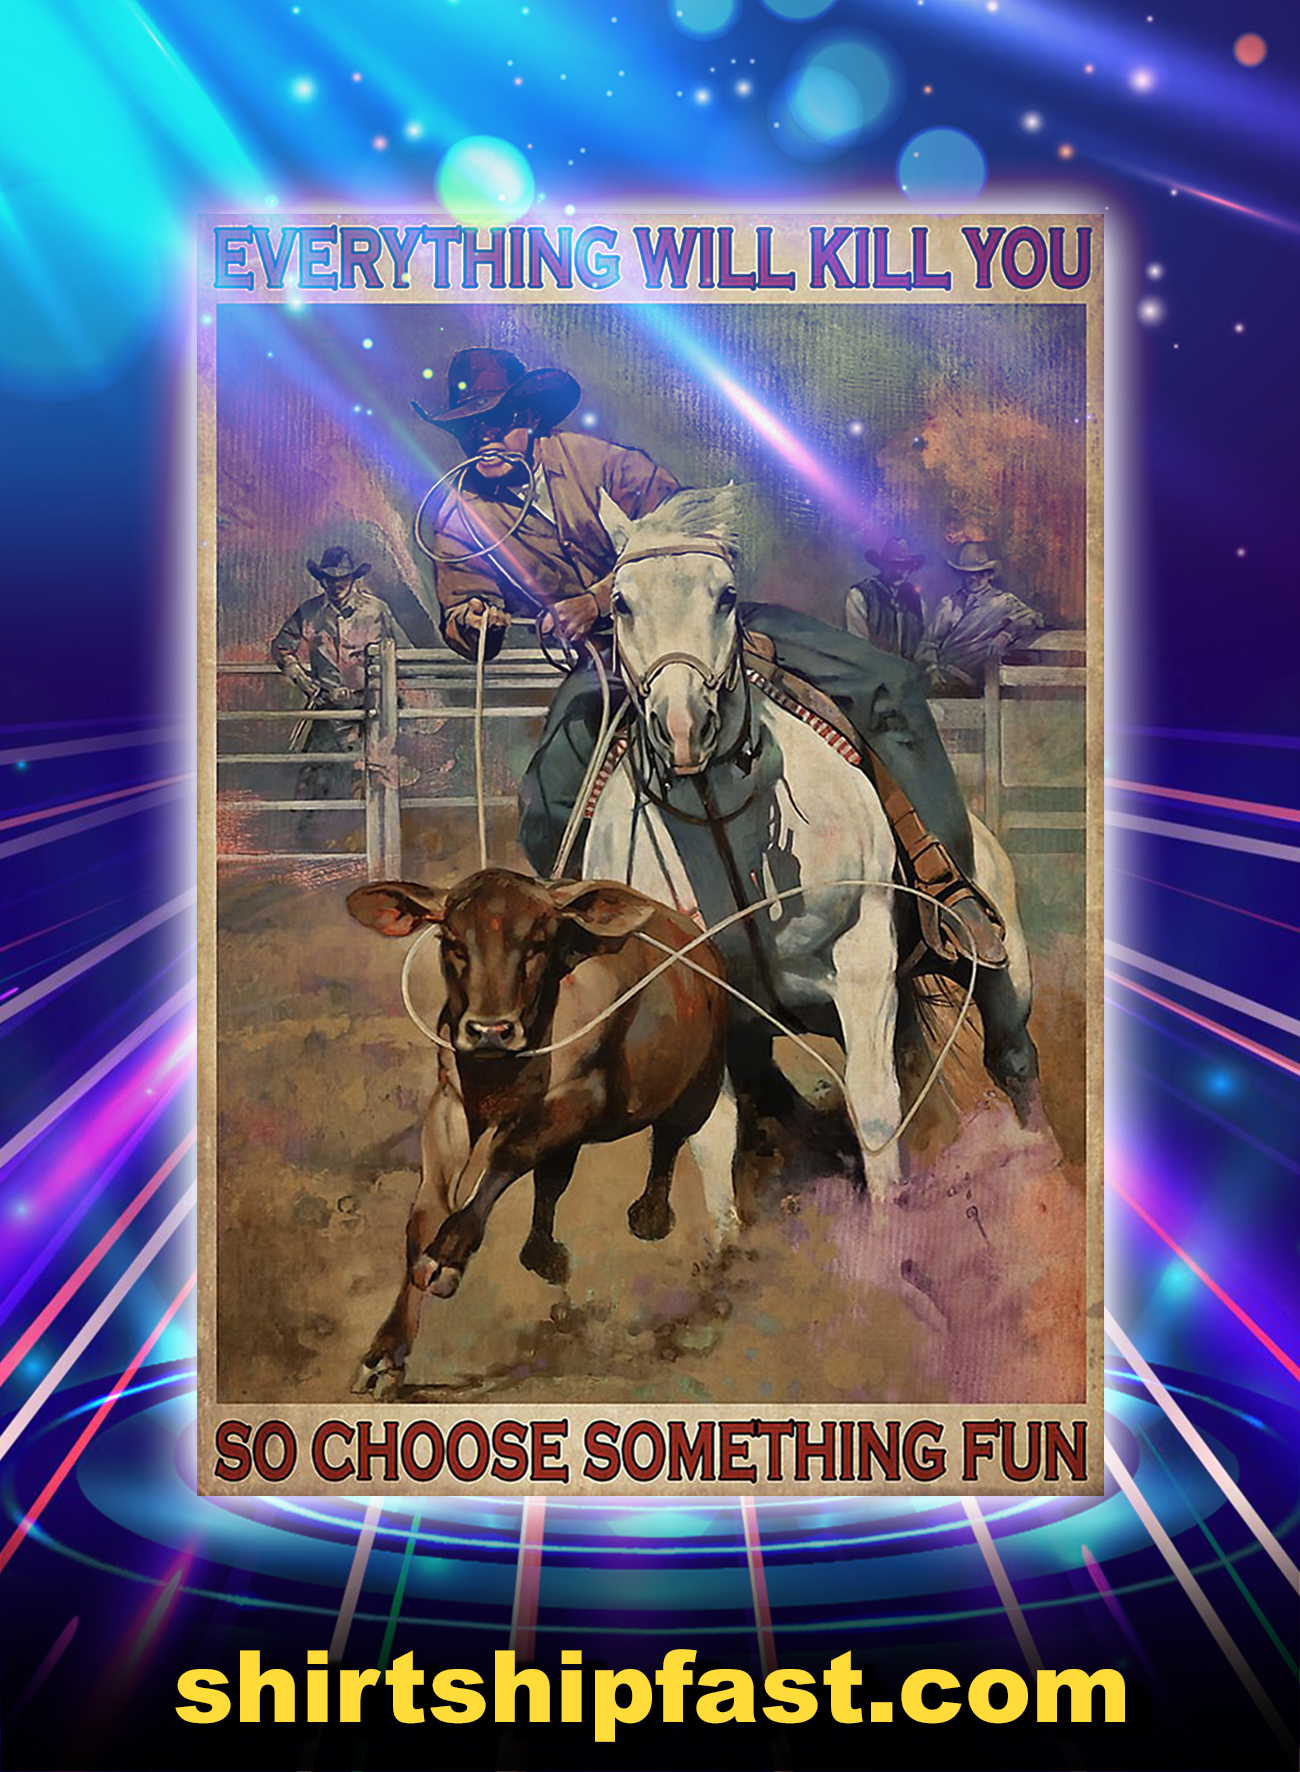 Rodeo everything will kill you poster - A1